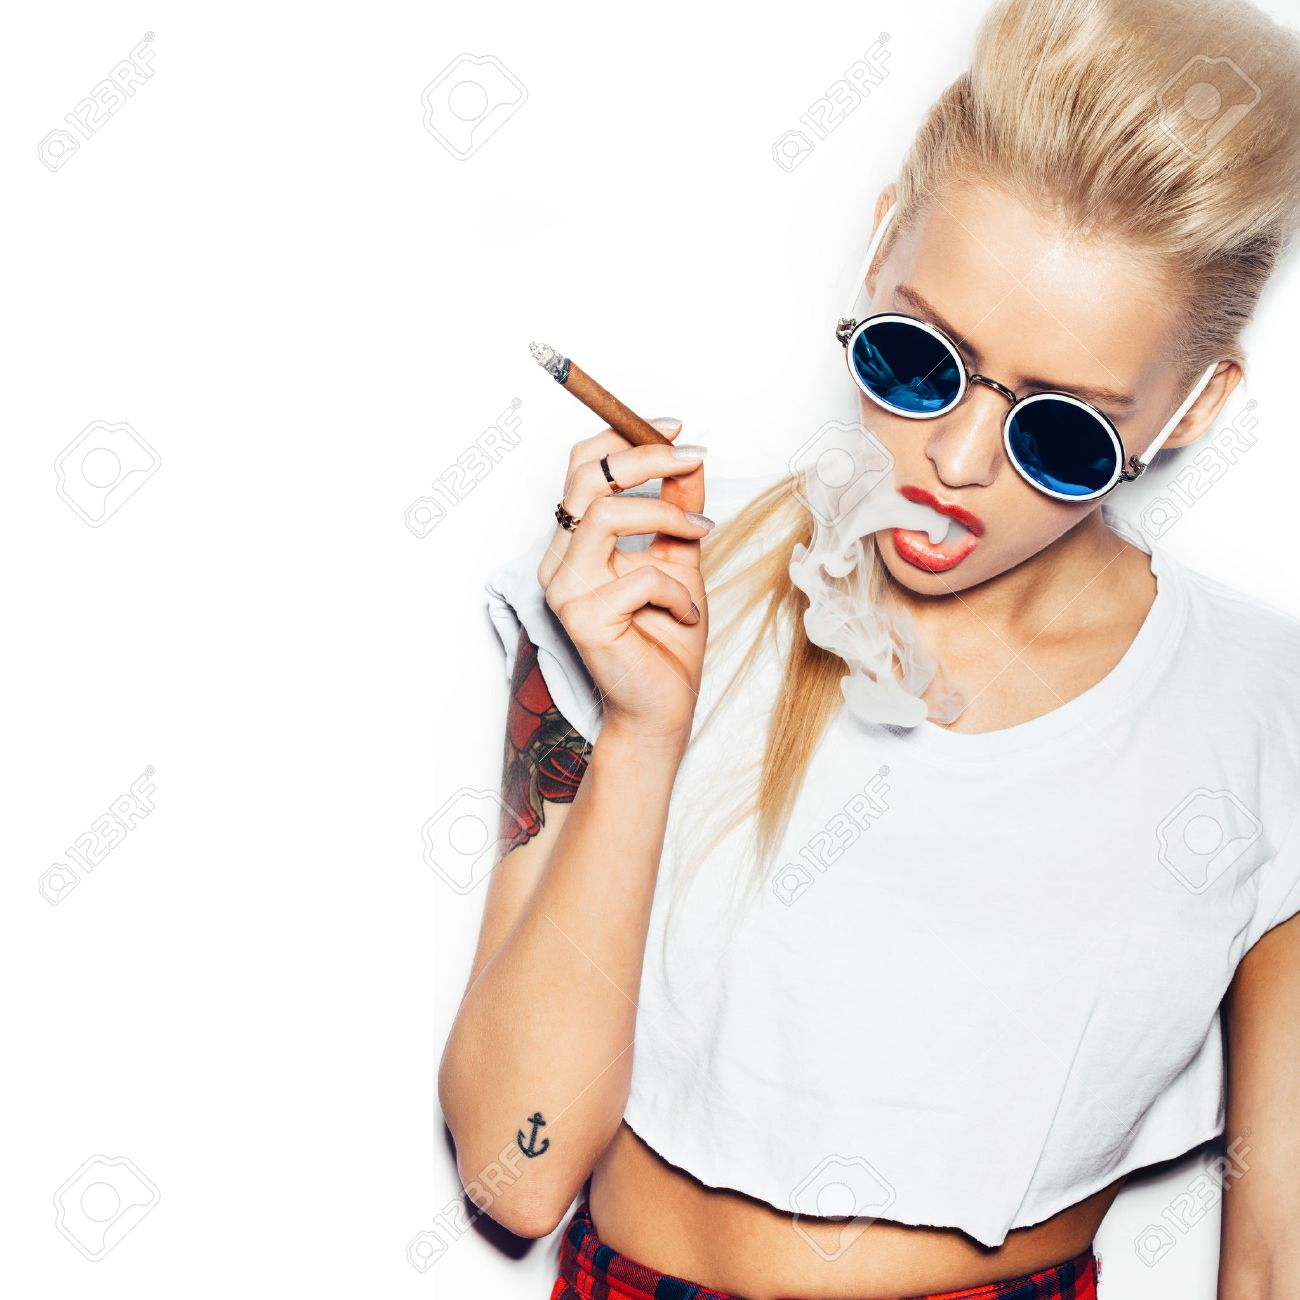 Sexy Woman In Sunglasses And White T Shirt Blowing Smoke From